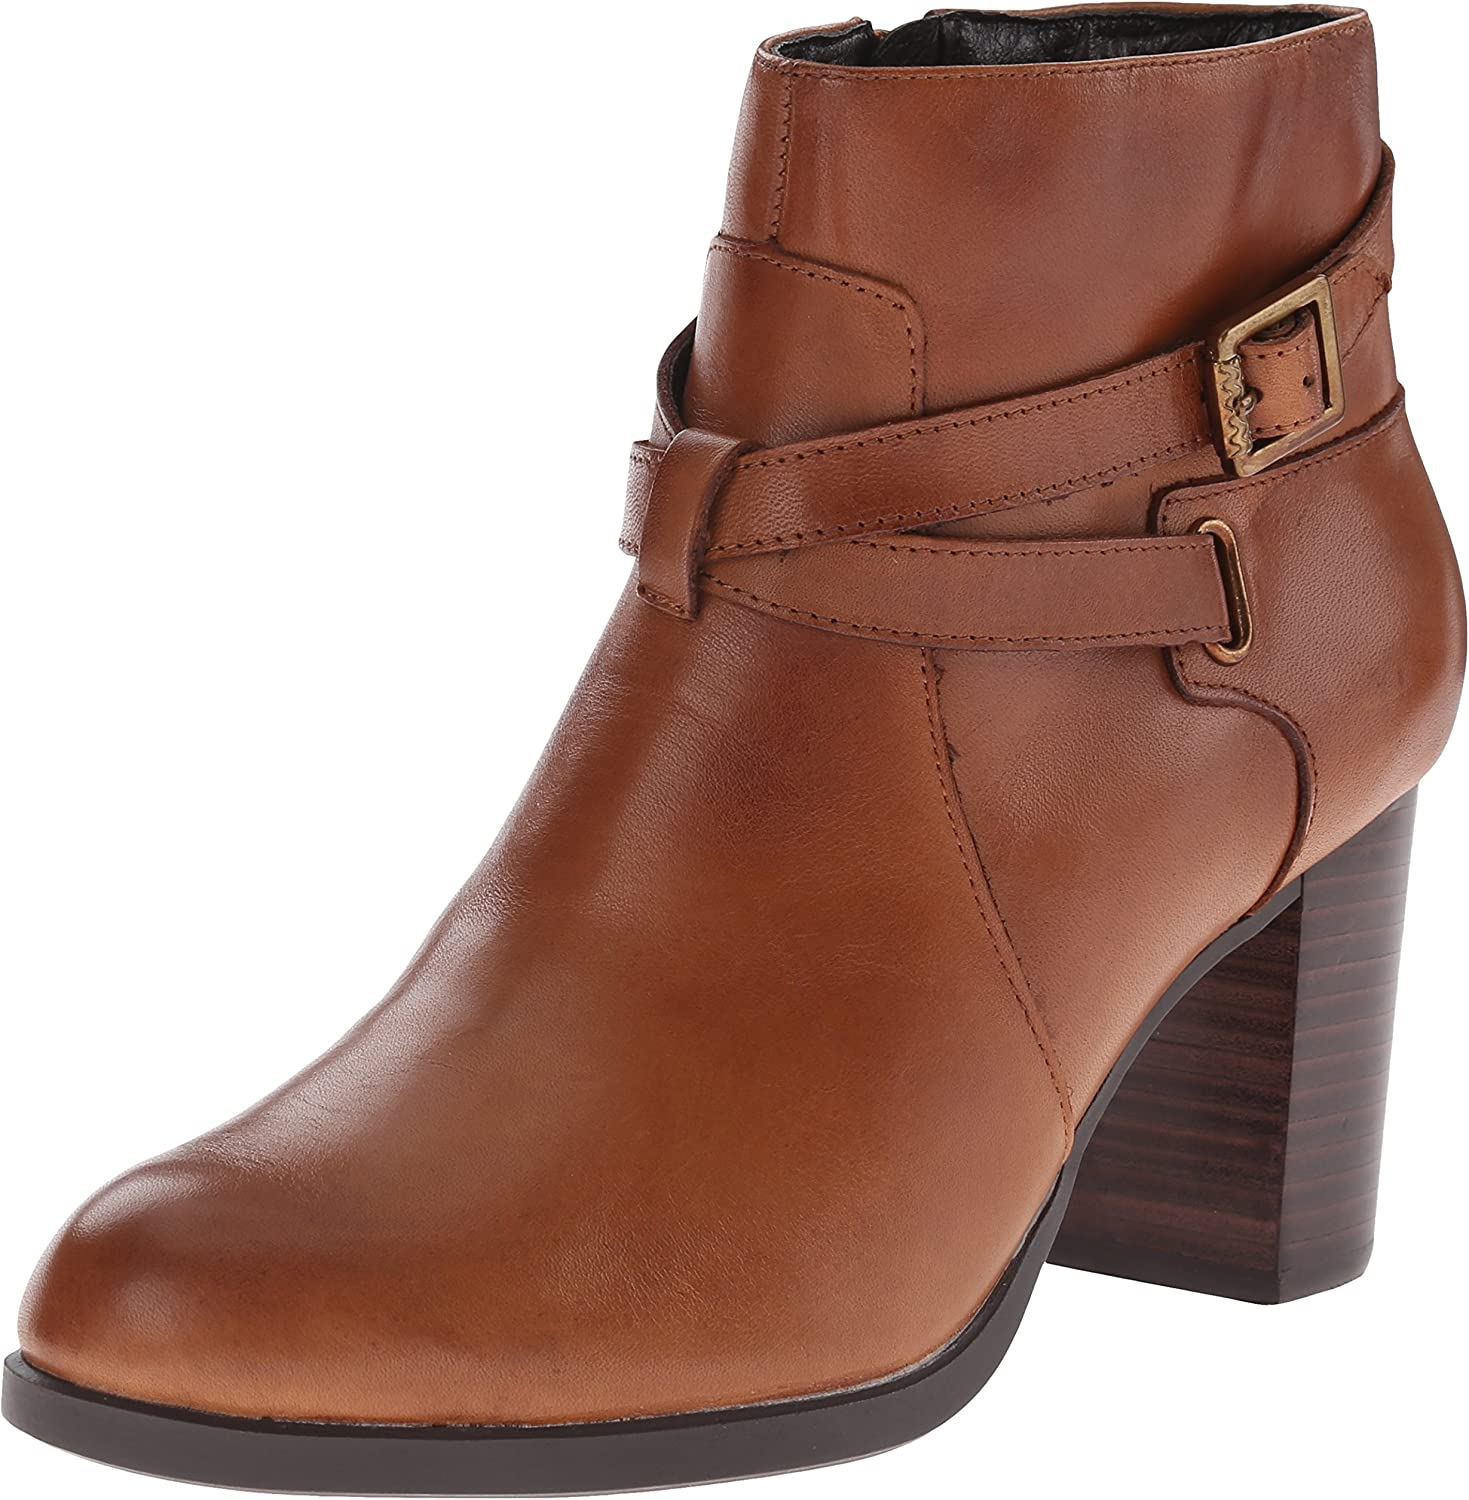 Sperry Top-Sider Women's Dasher Belle Boot